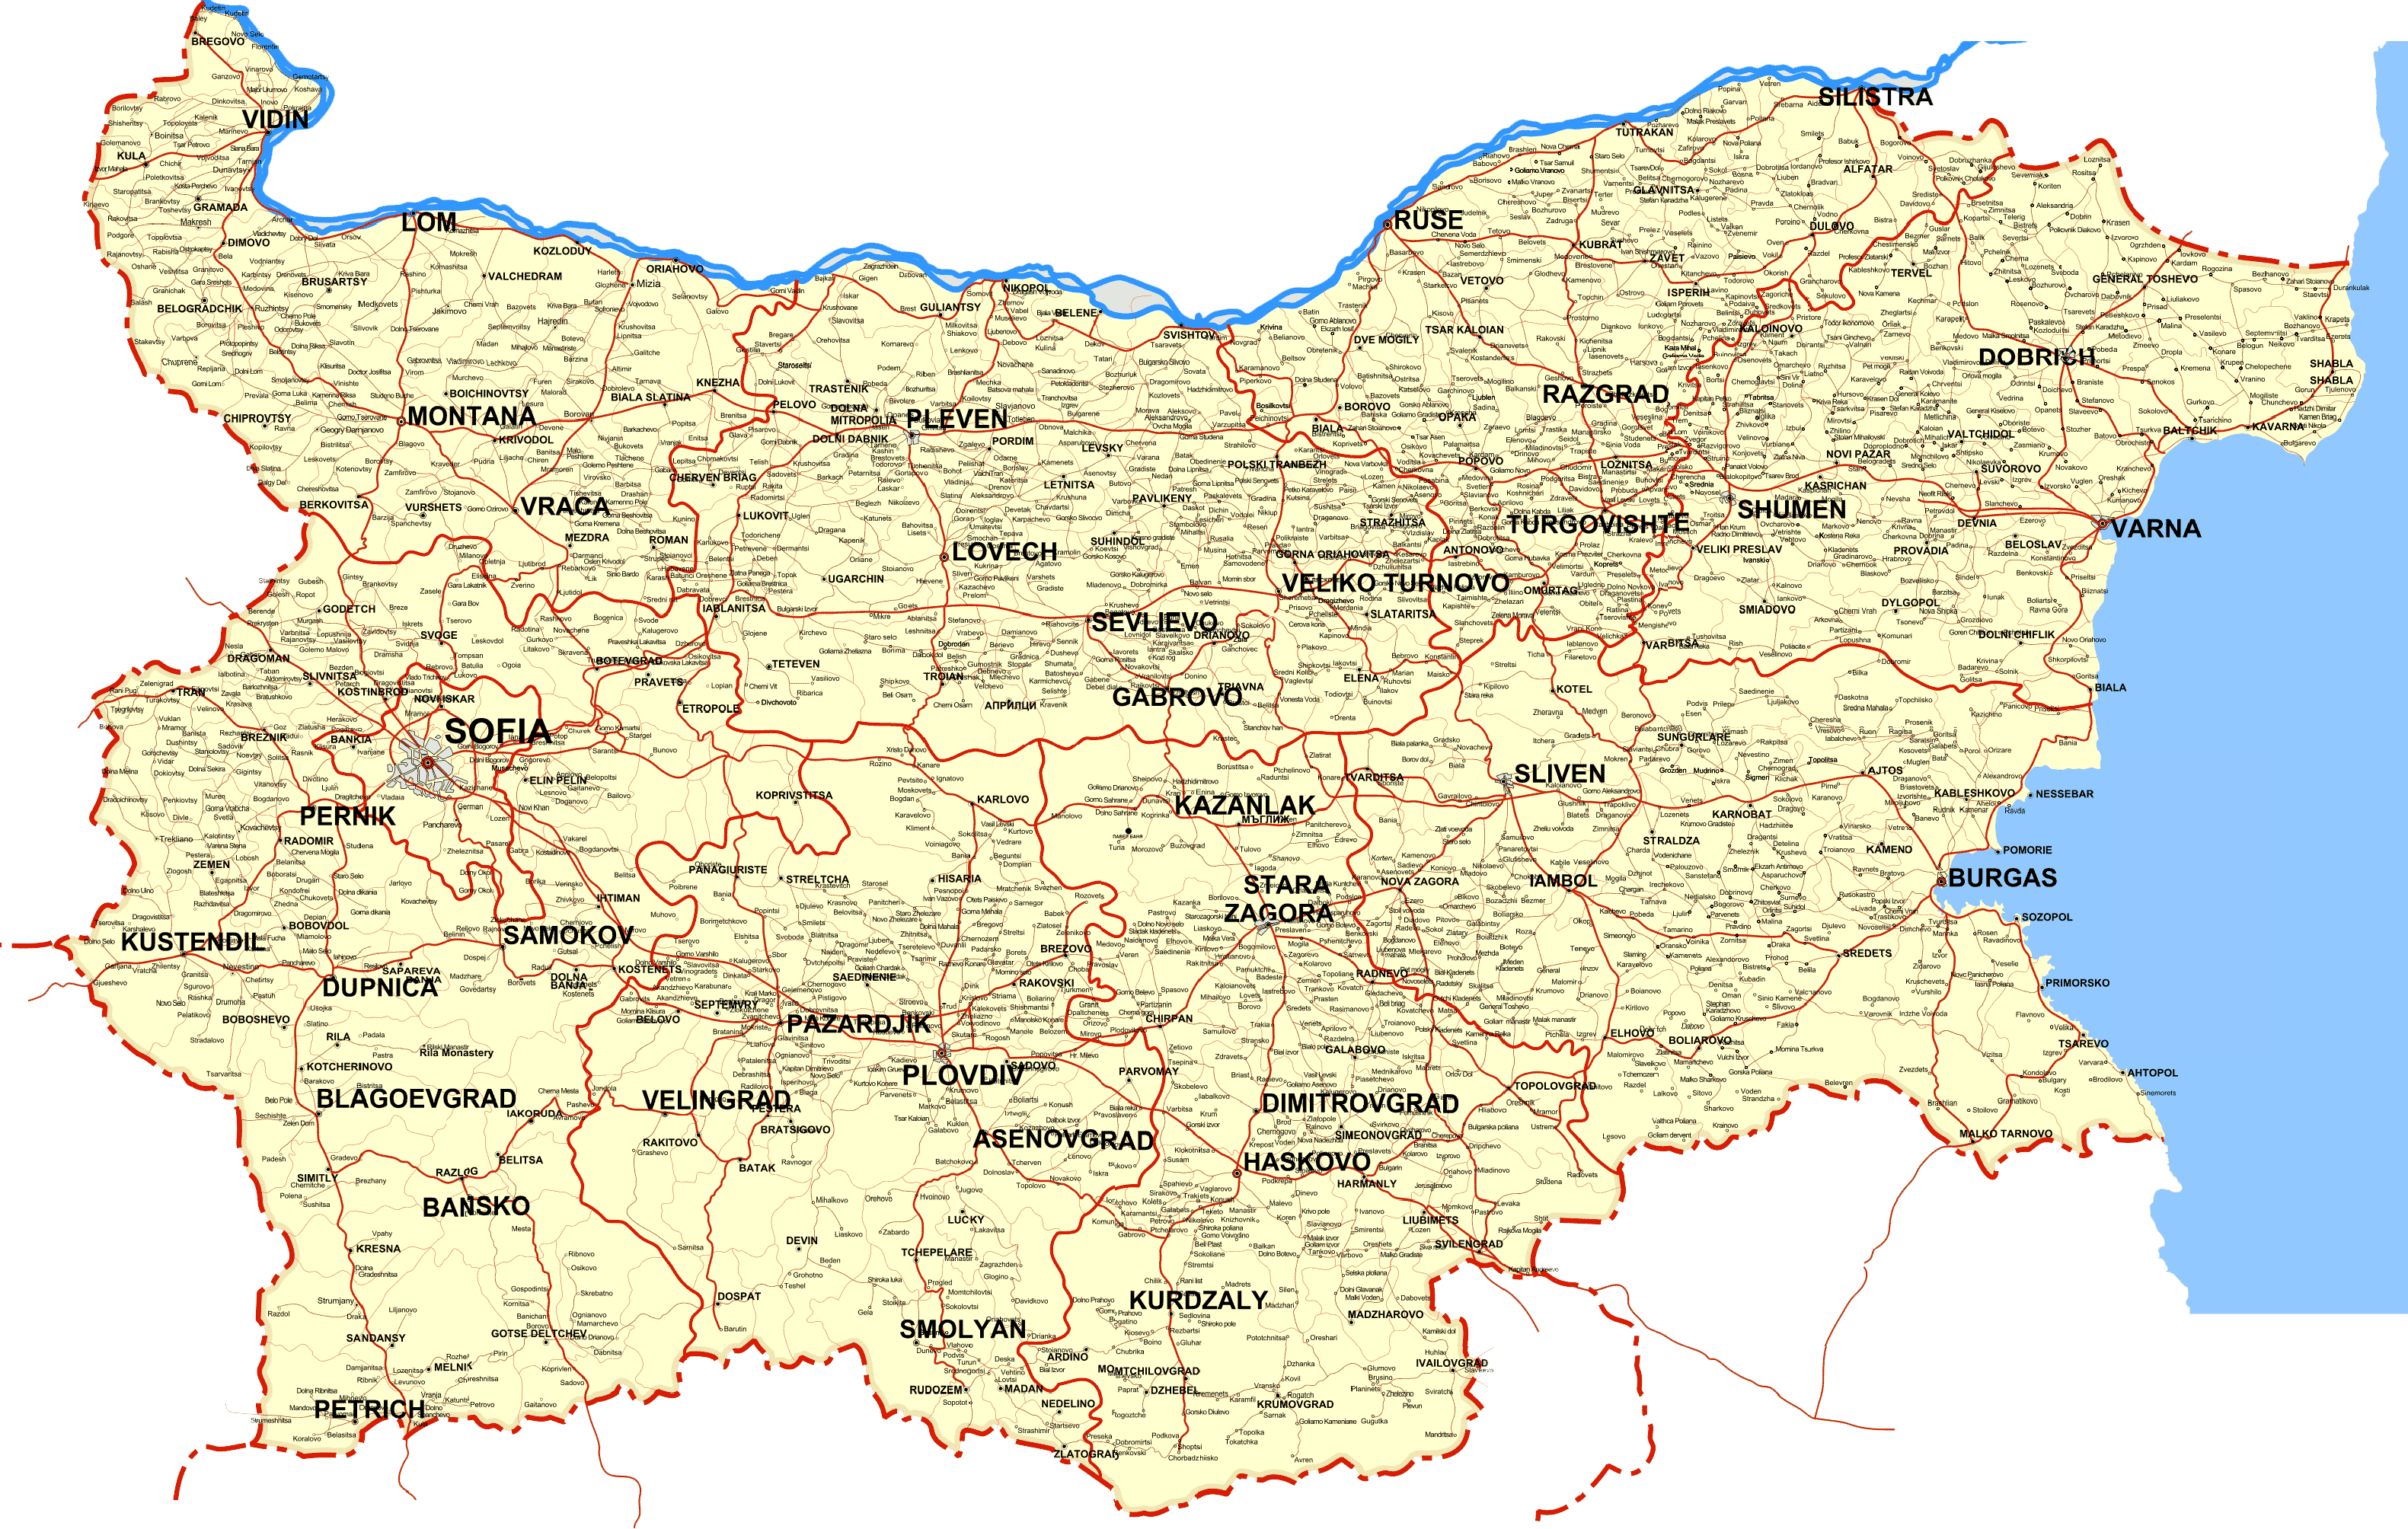 Detailed Map of Bulgaria